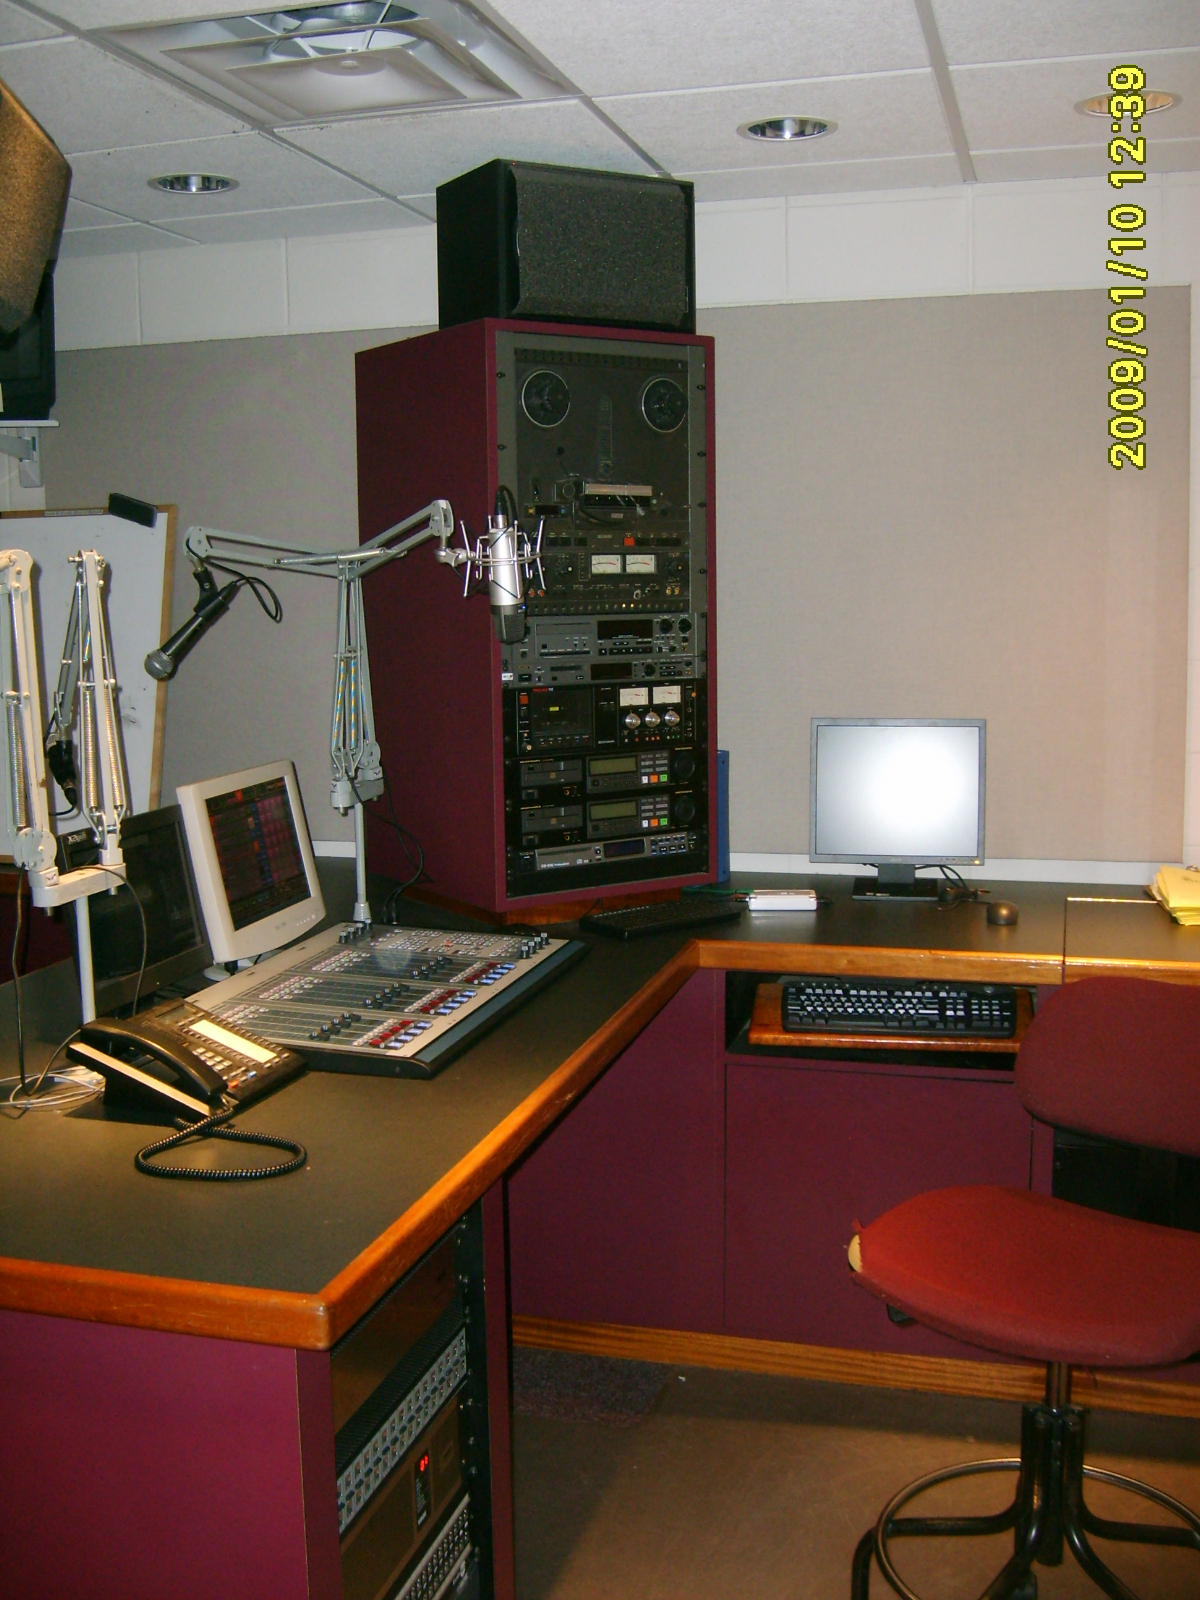 The Basement studio